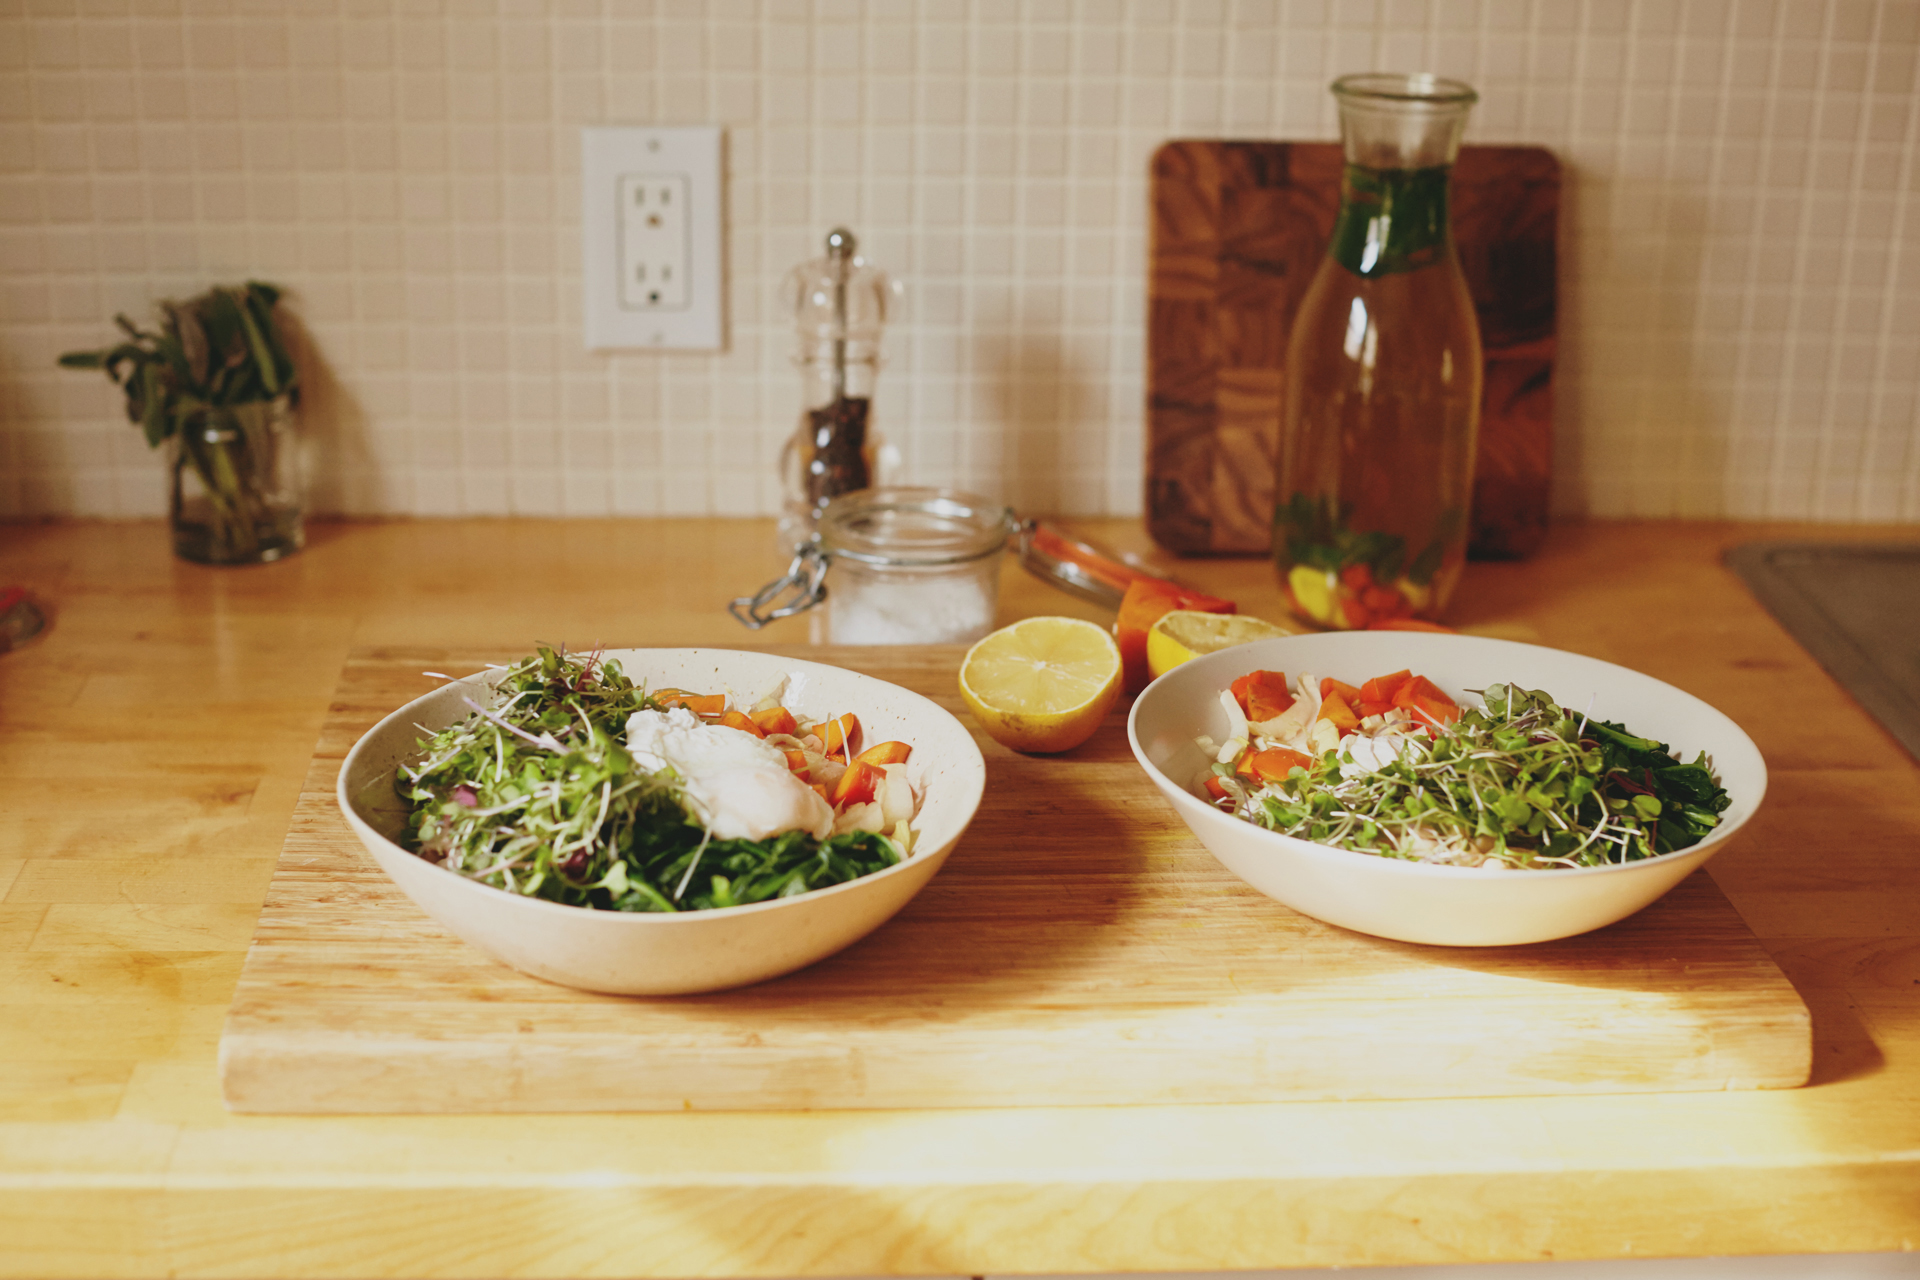 Ashley Neese Nutritional Counsellor shares her Winter Wellness Bowl Recipe with Foodadit in Los Angeles